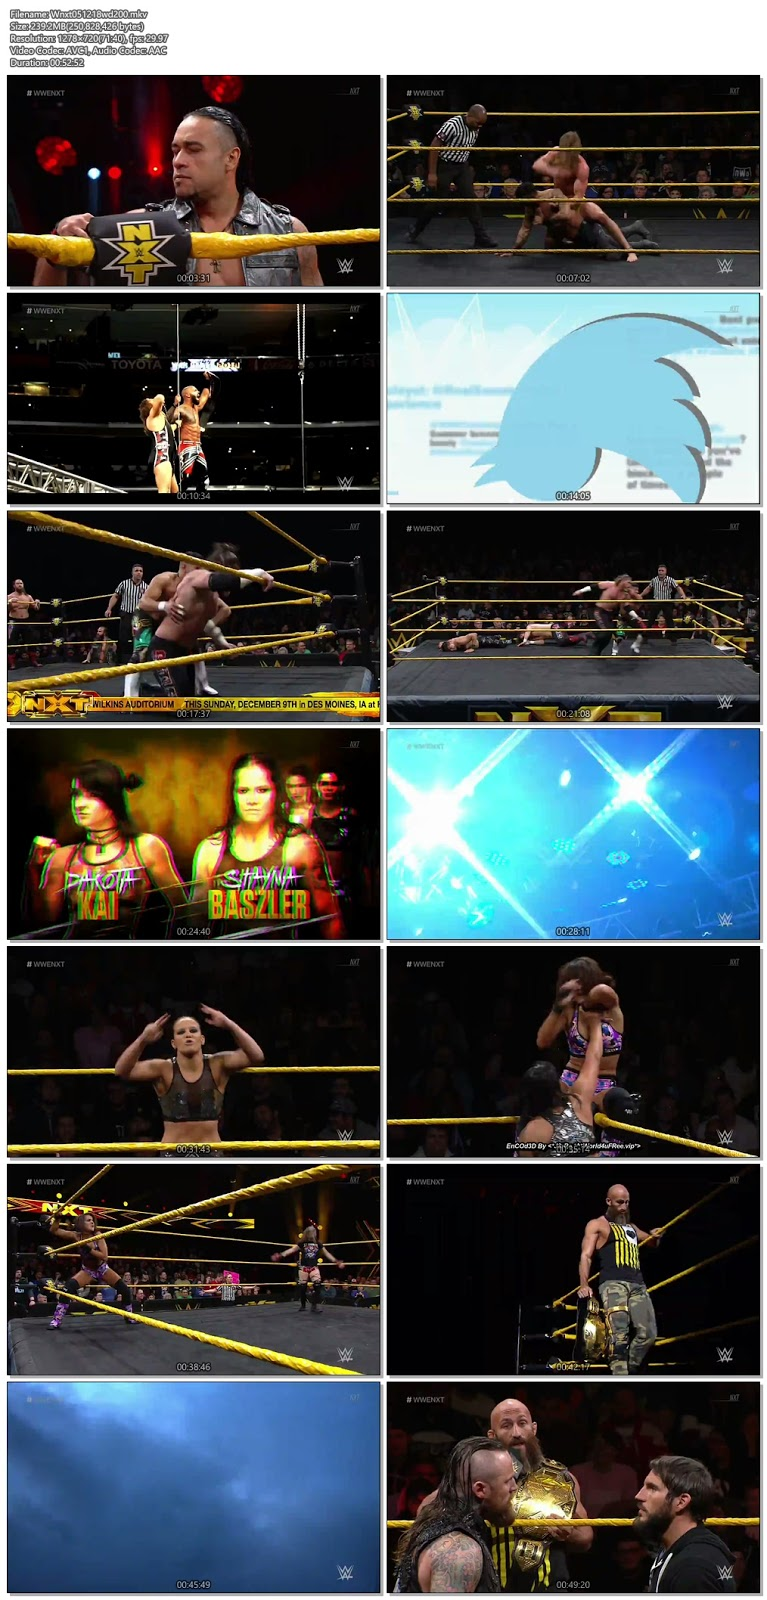 WWE NXT 05 December 2018 720p WEBRip 250MB x264 hollywood tv show wwe show WWE NXT 26 April 2017 200mb compressed small size free download or watch online at world4ufree.fun